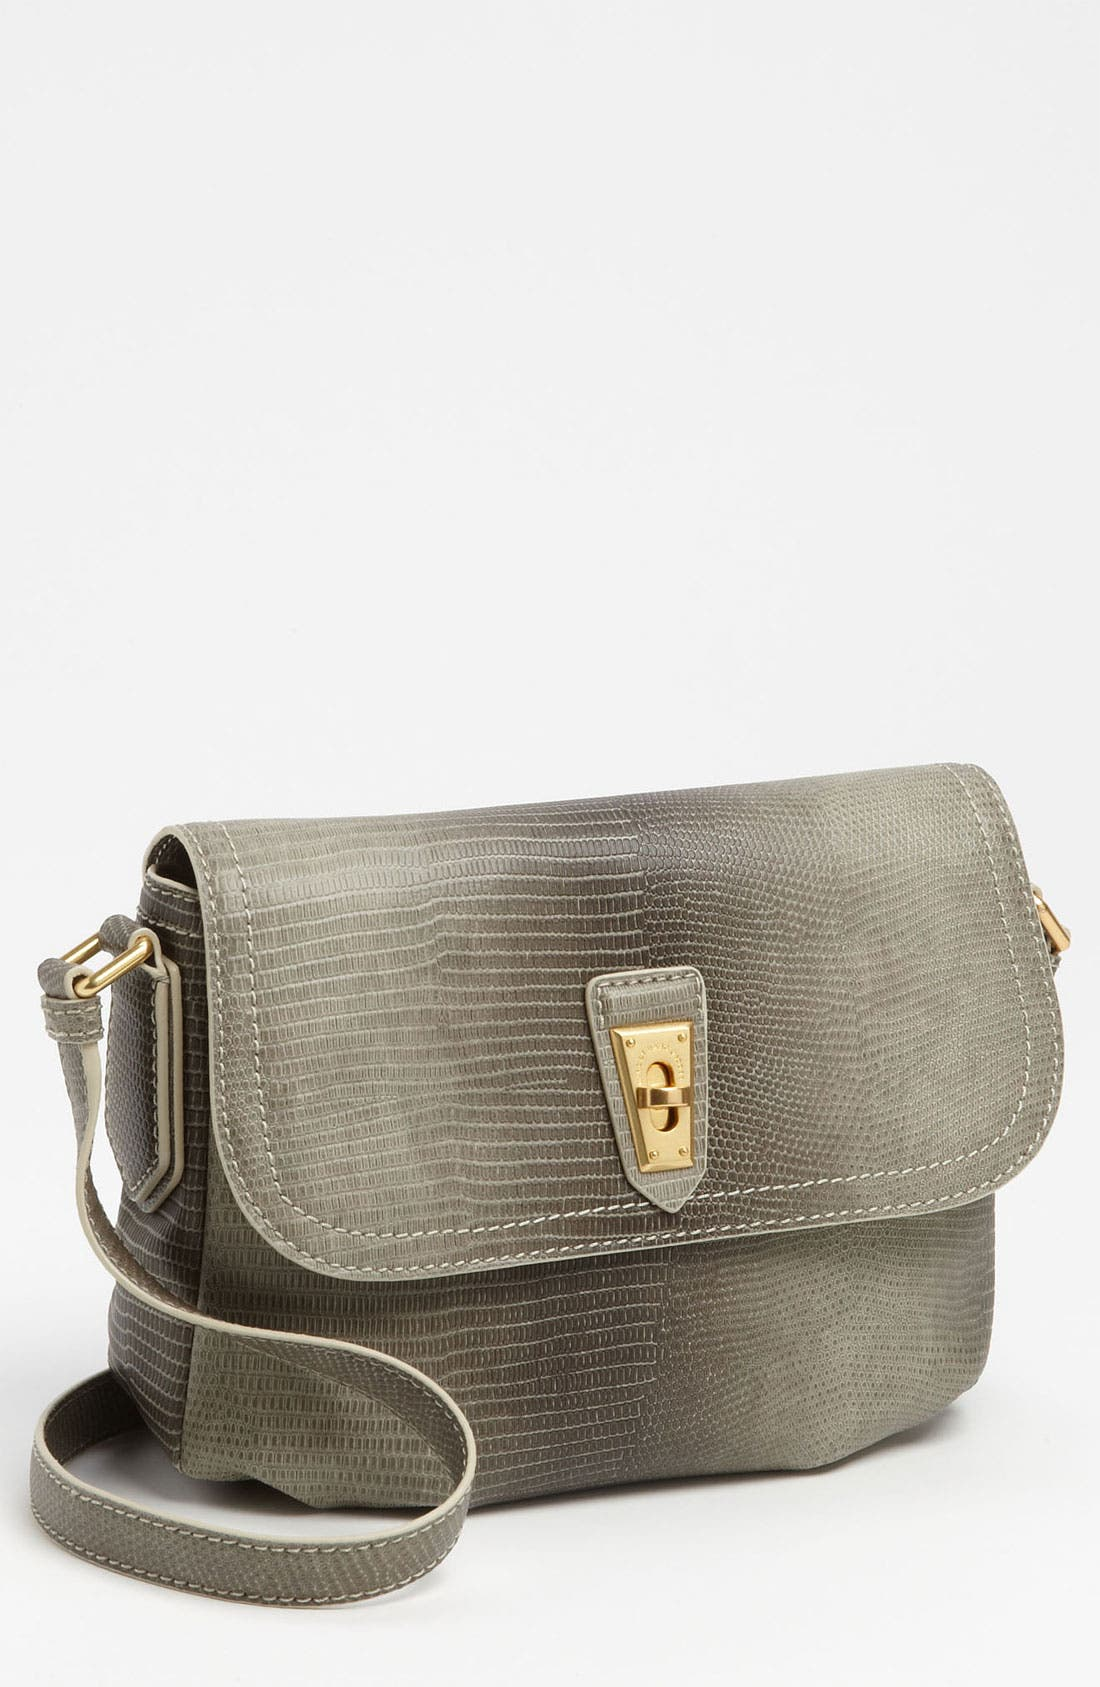 Alternate Image 1 Selected - MARC BY MARC JACOBS 'Embossed Lizzie' Crossbody Bag